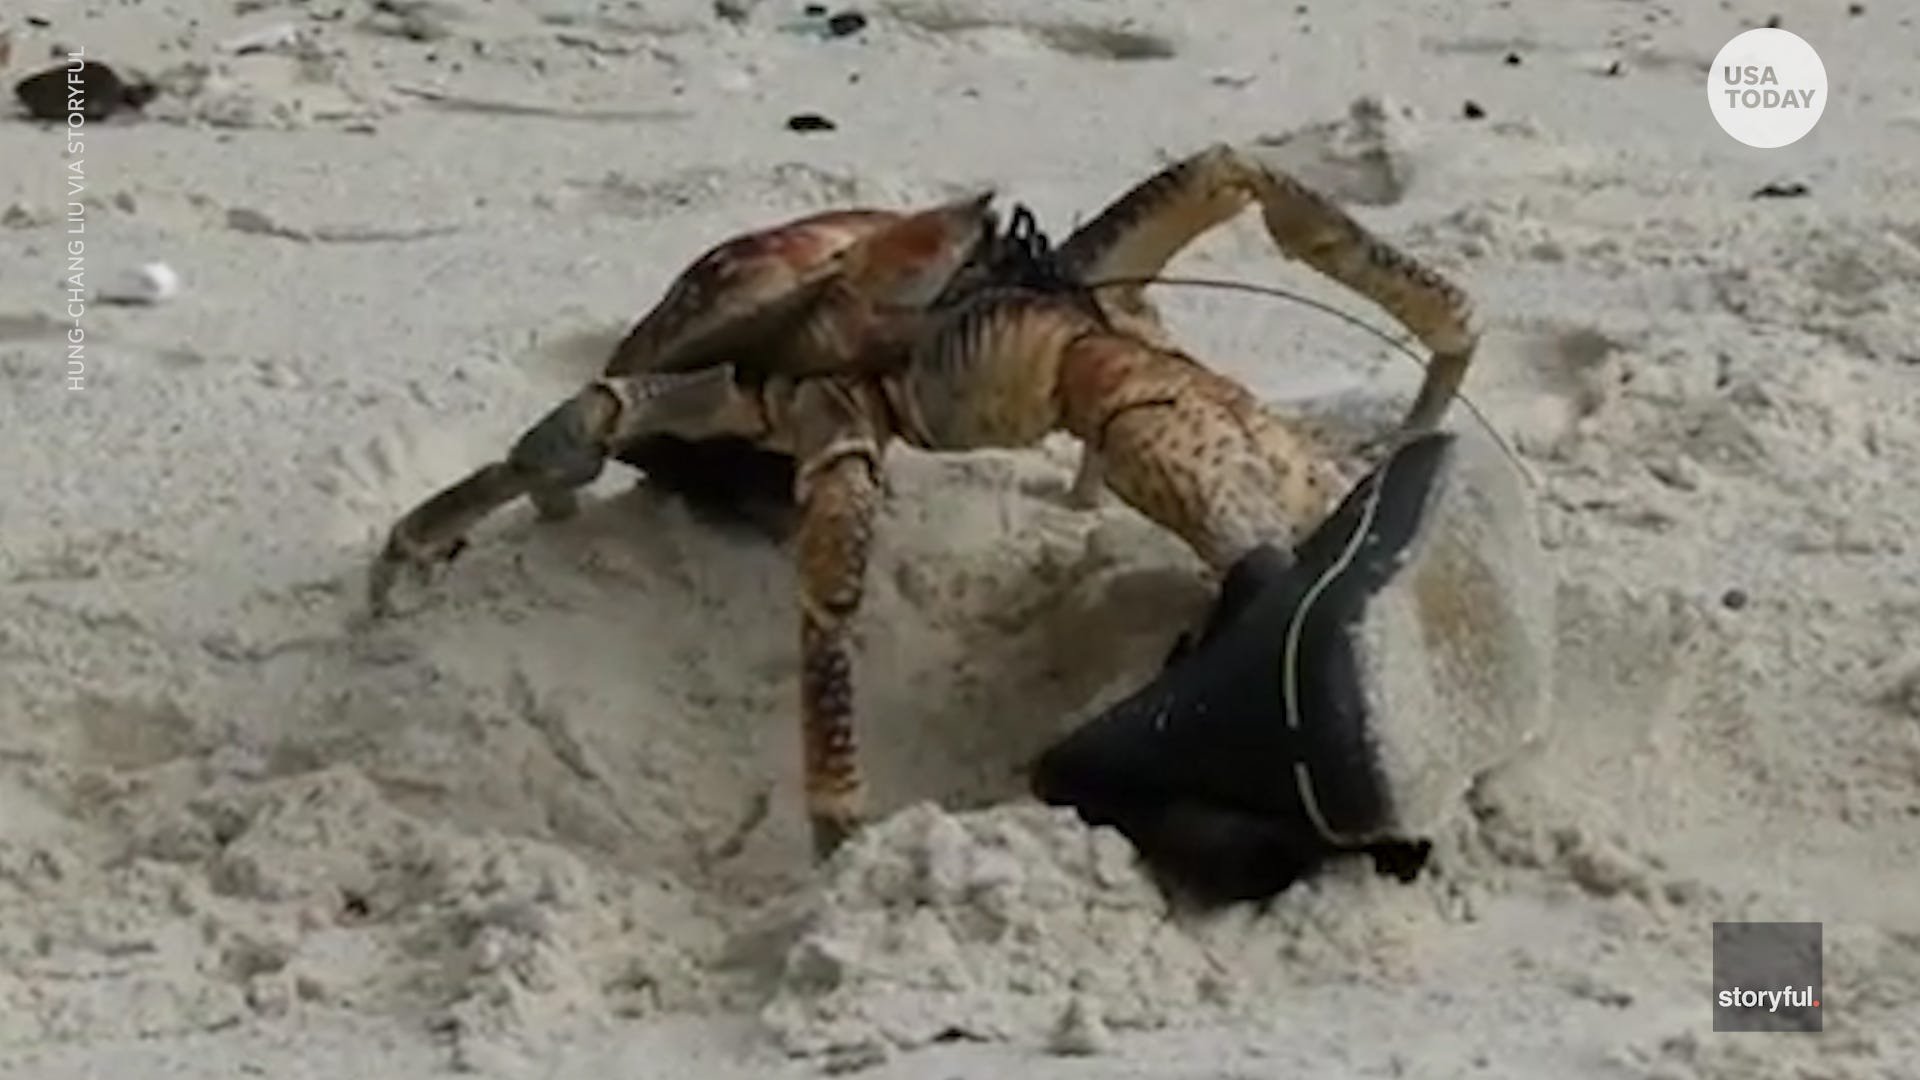 Robber crab lives up to its name after this heist on the beach